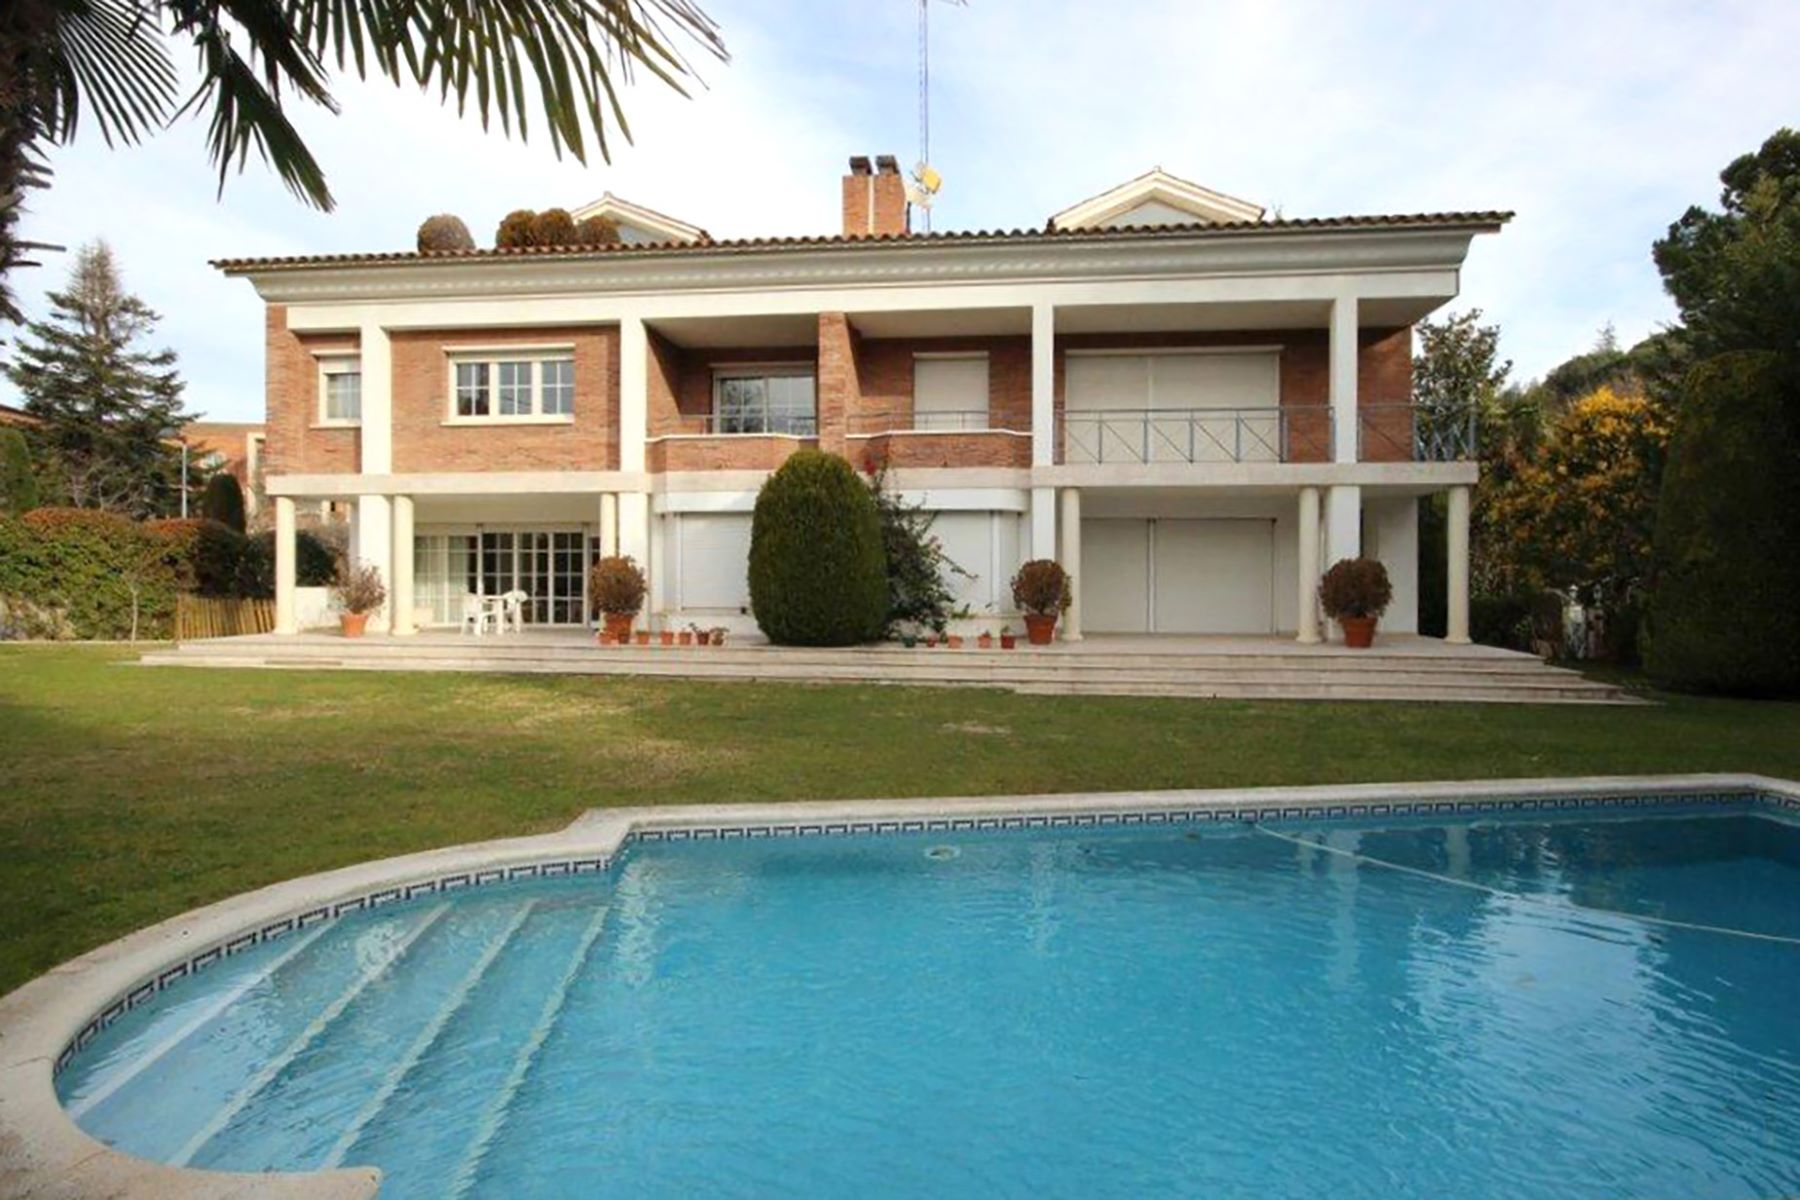 Single Family Home for Sale at Fantastic House in Valldoreix Sant Cugat Del Valles, Barcelona, 08172 Spain